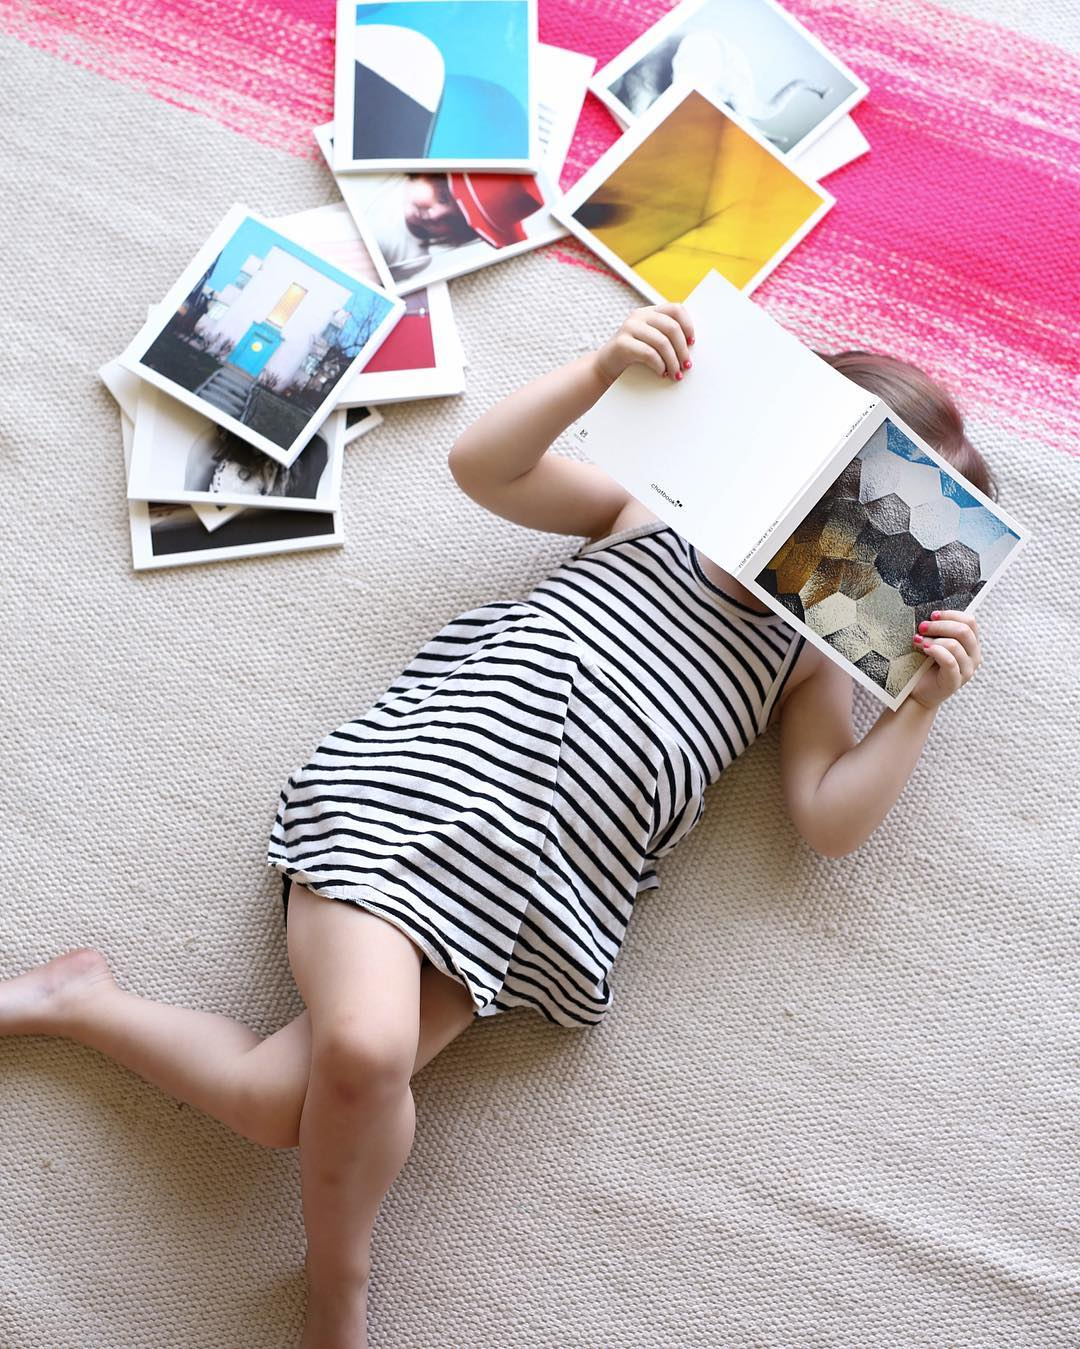 Make Chatbooks automatic photo books with your family photos